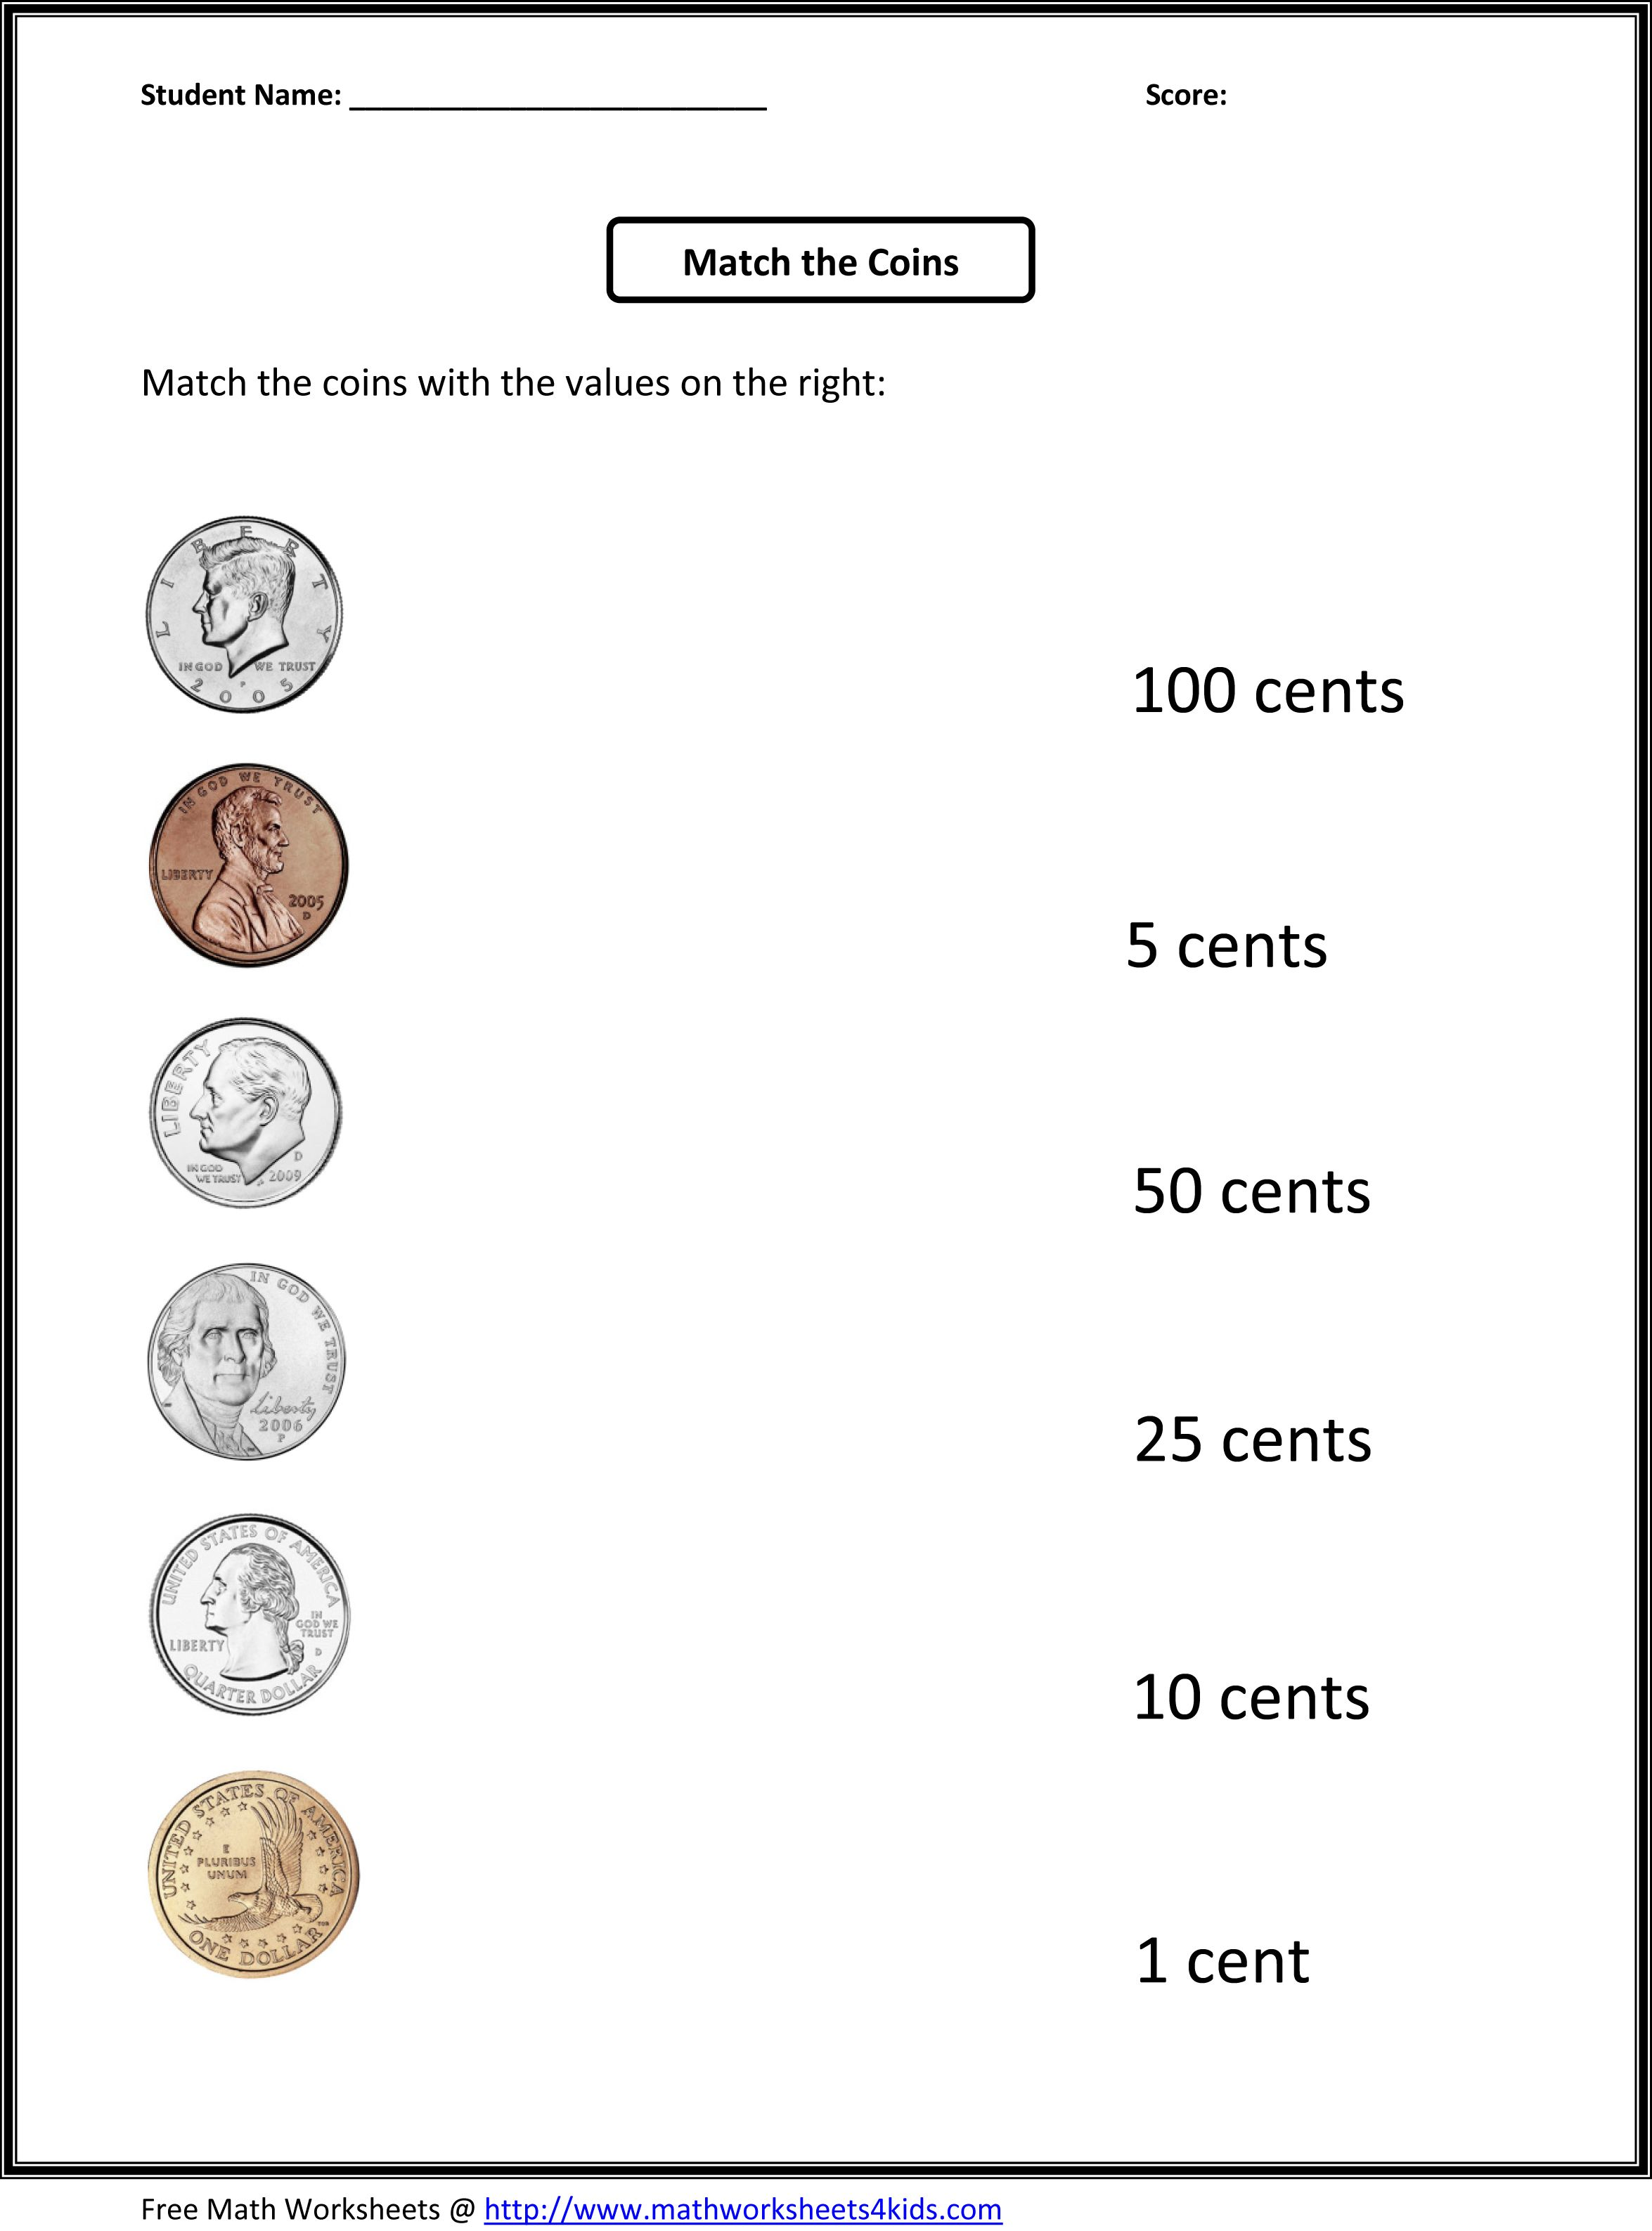 Printables Ist Grade Worksheets first grade worksheets get free 1st math match the coins and its values